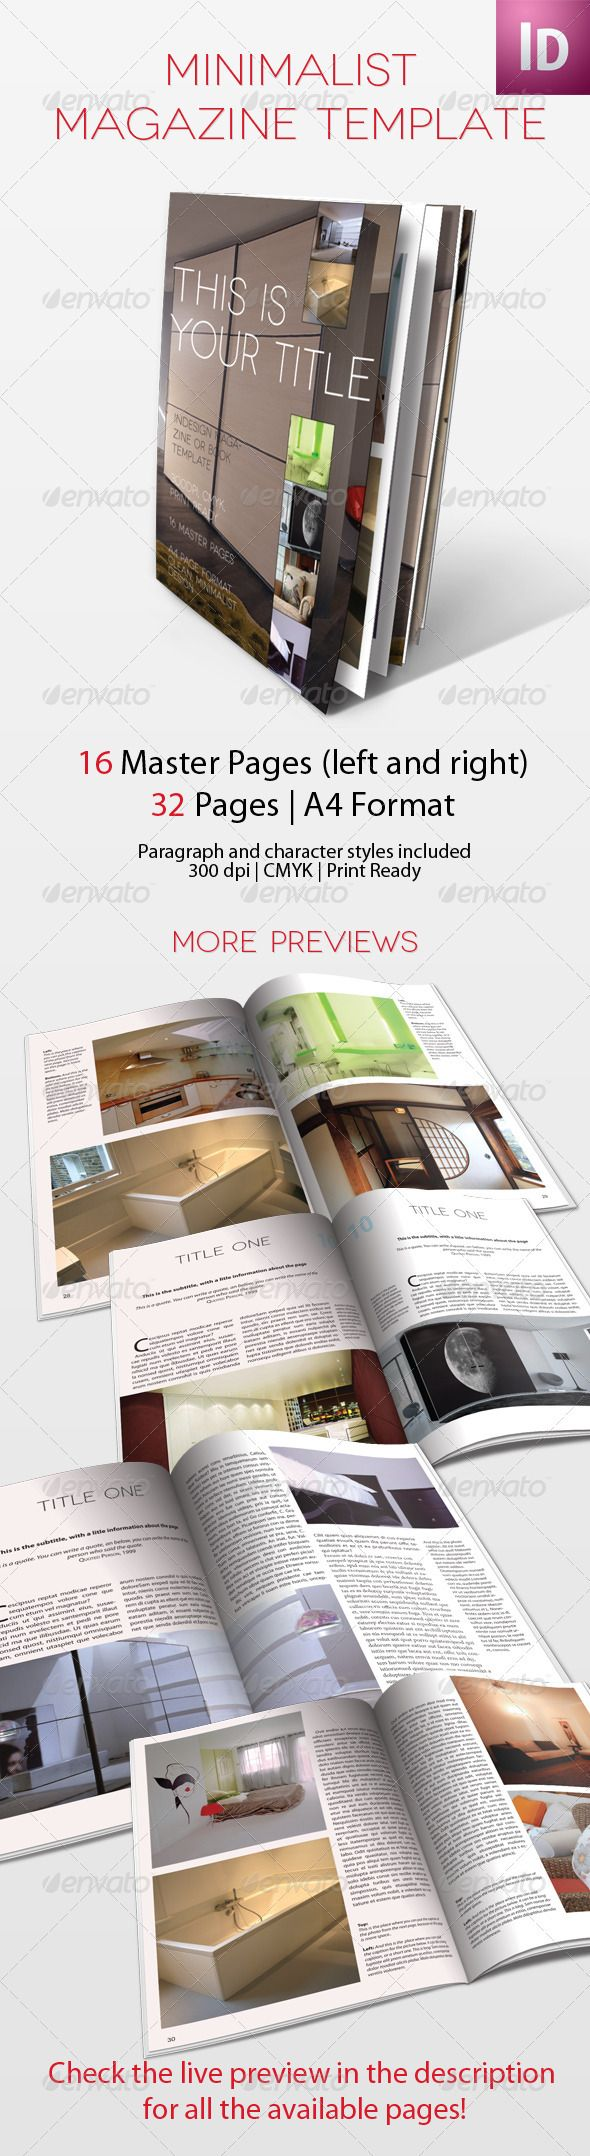 Magazine template minimalist free download notebook for Free architectural magazines